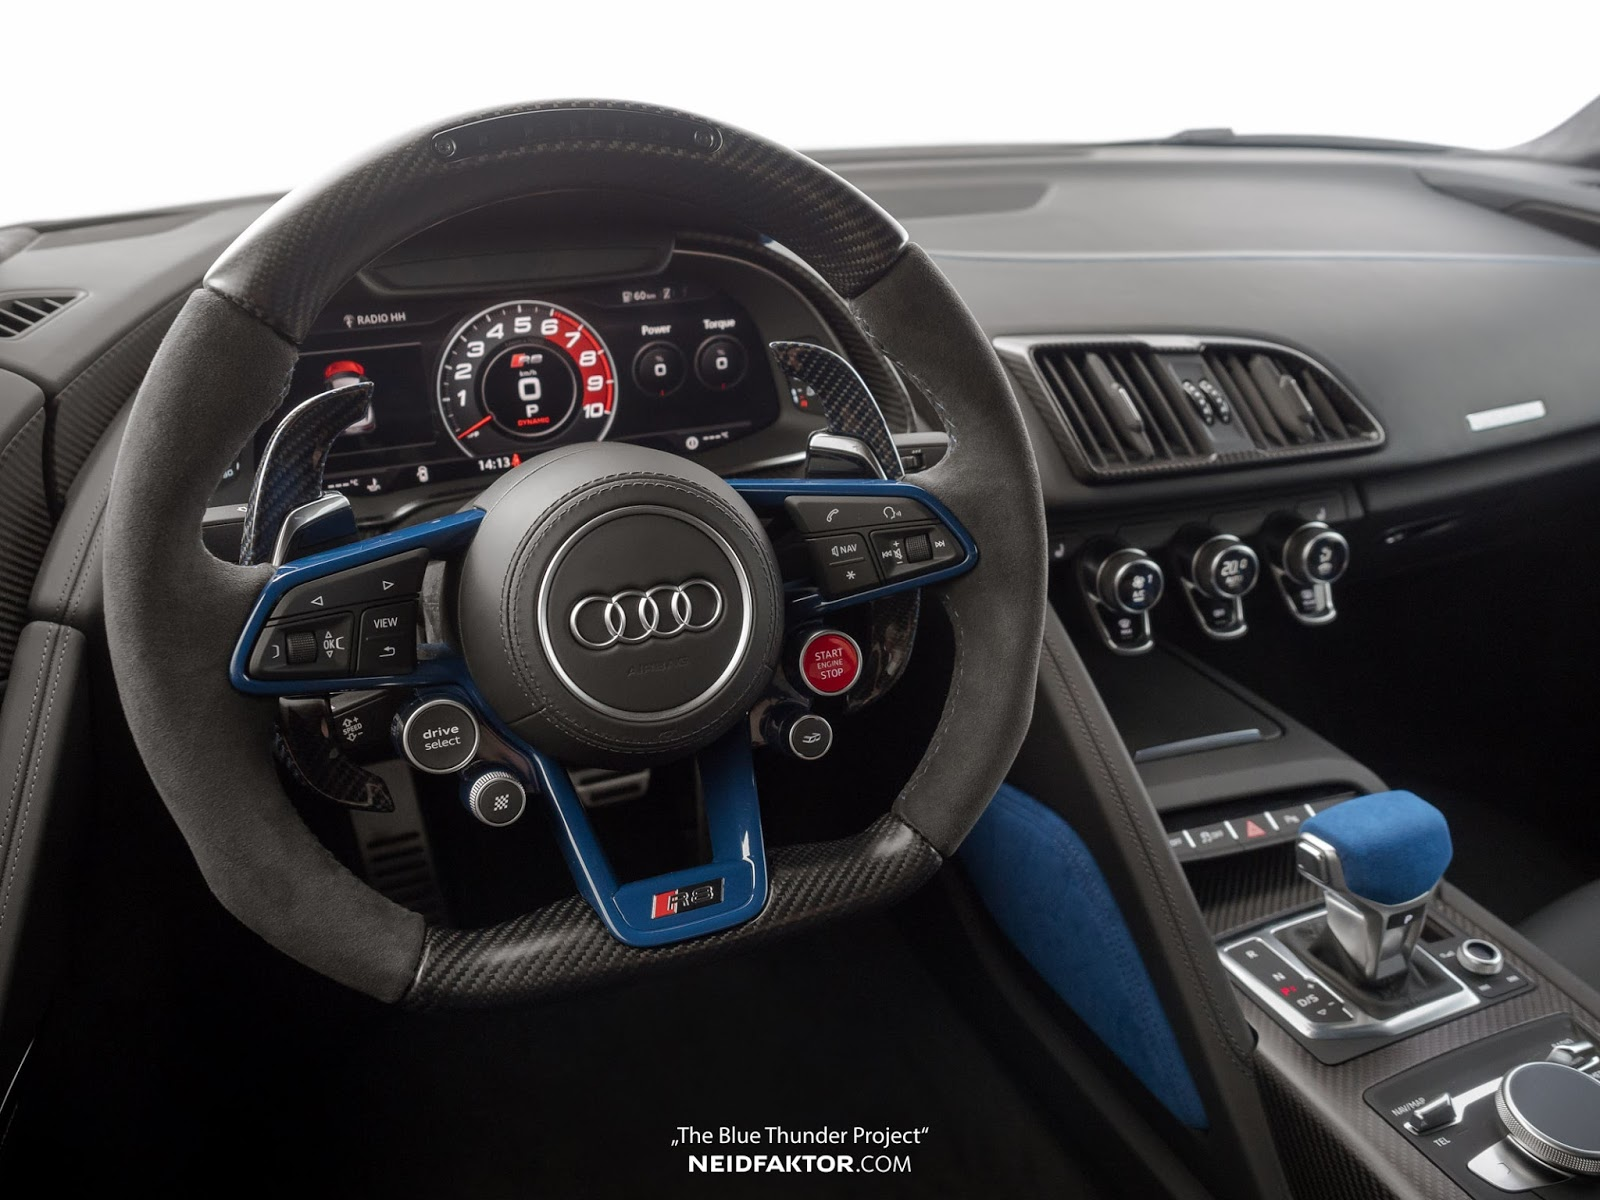 Amazing Neidfaktor Pimps Out Audi R8 V10 Plus With Blue U0026 Black Interior | Carscoops